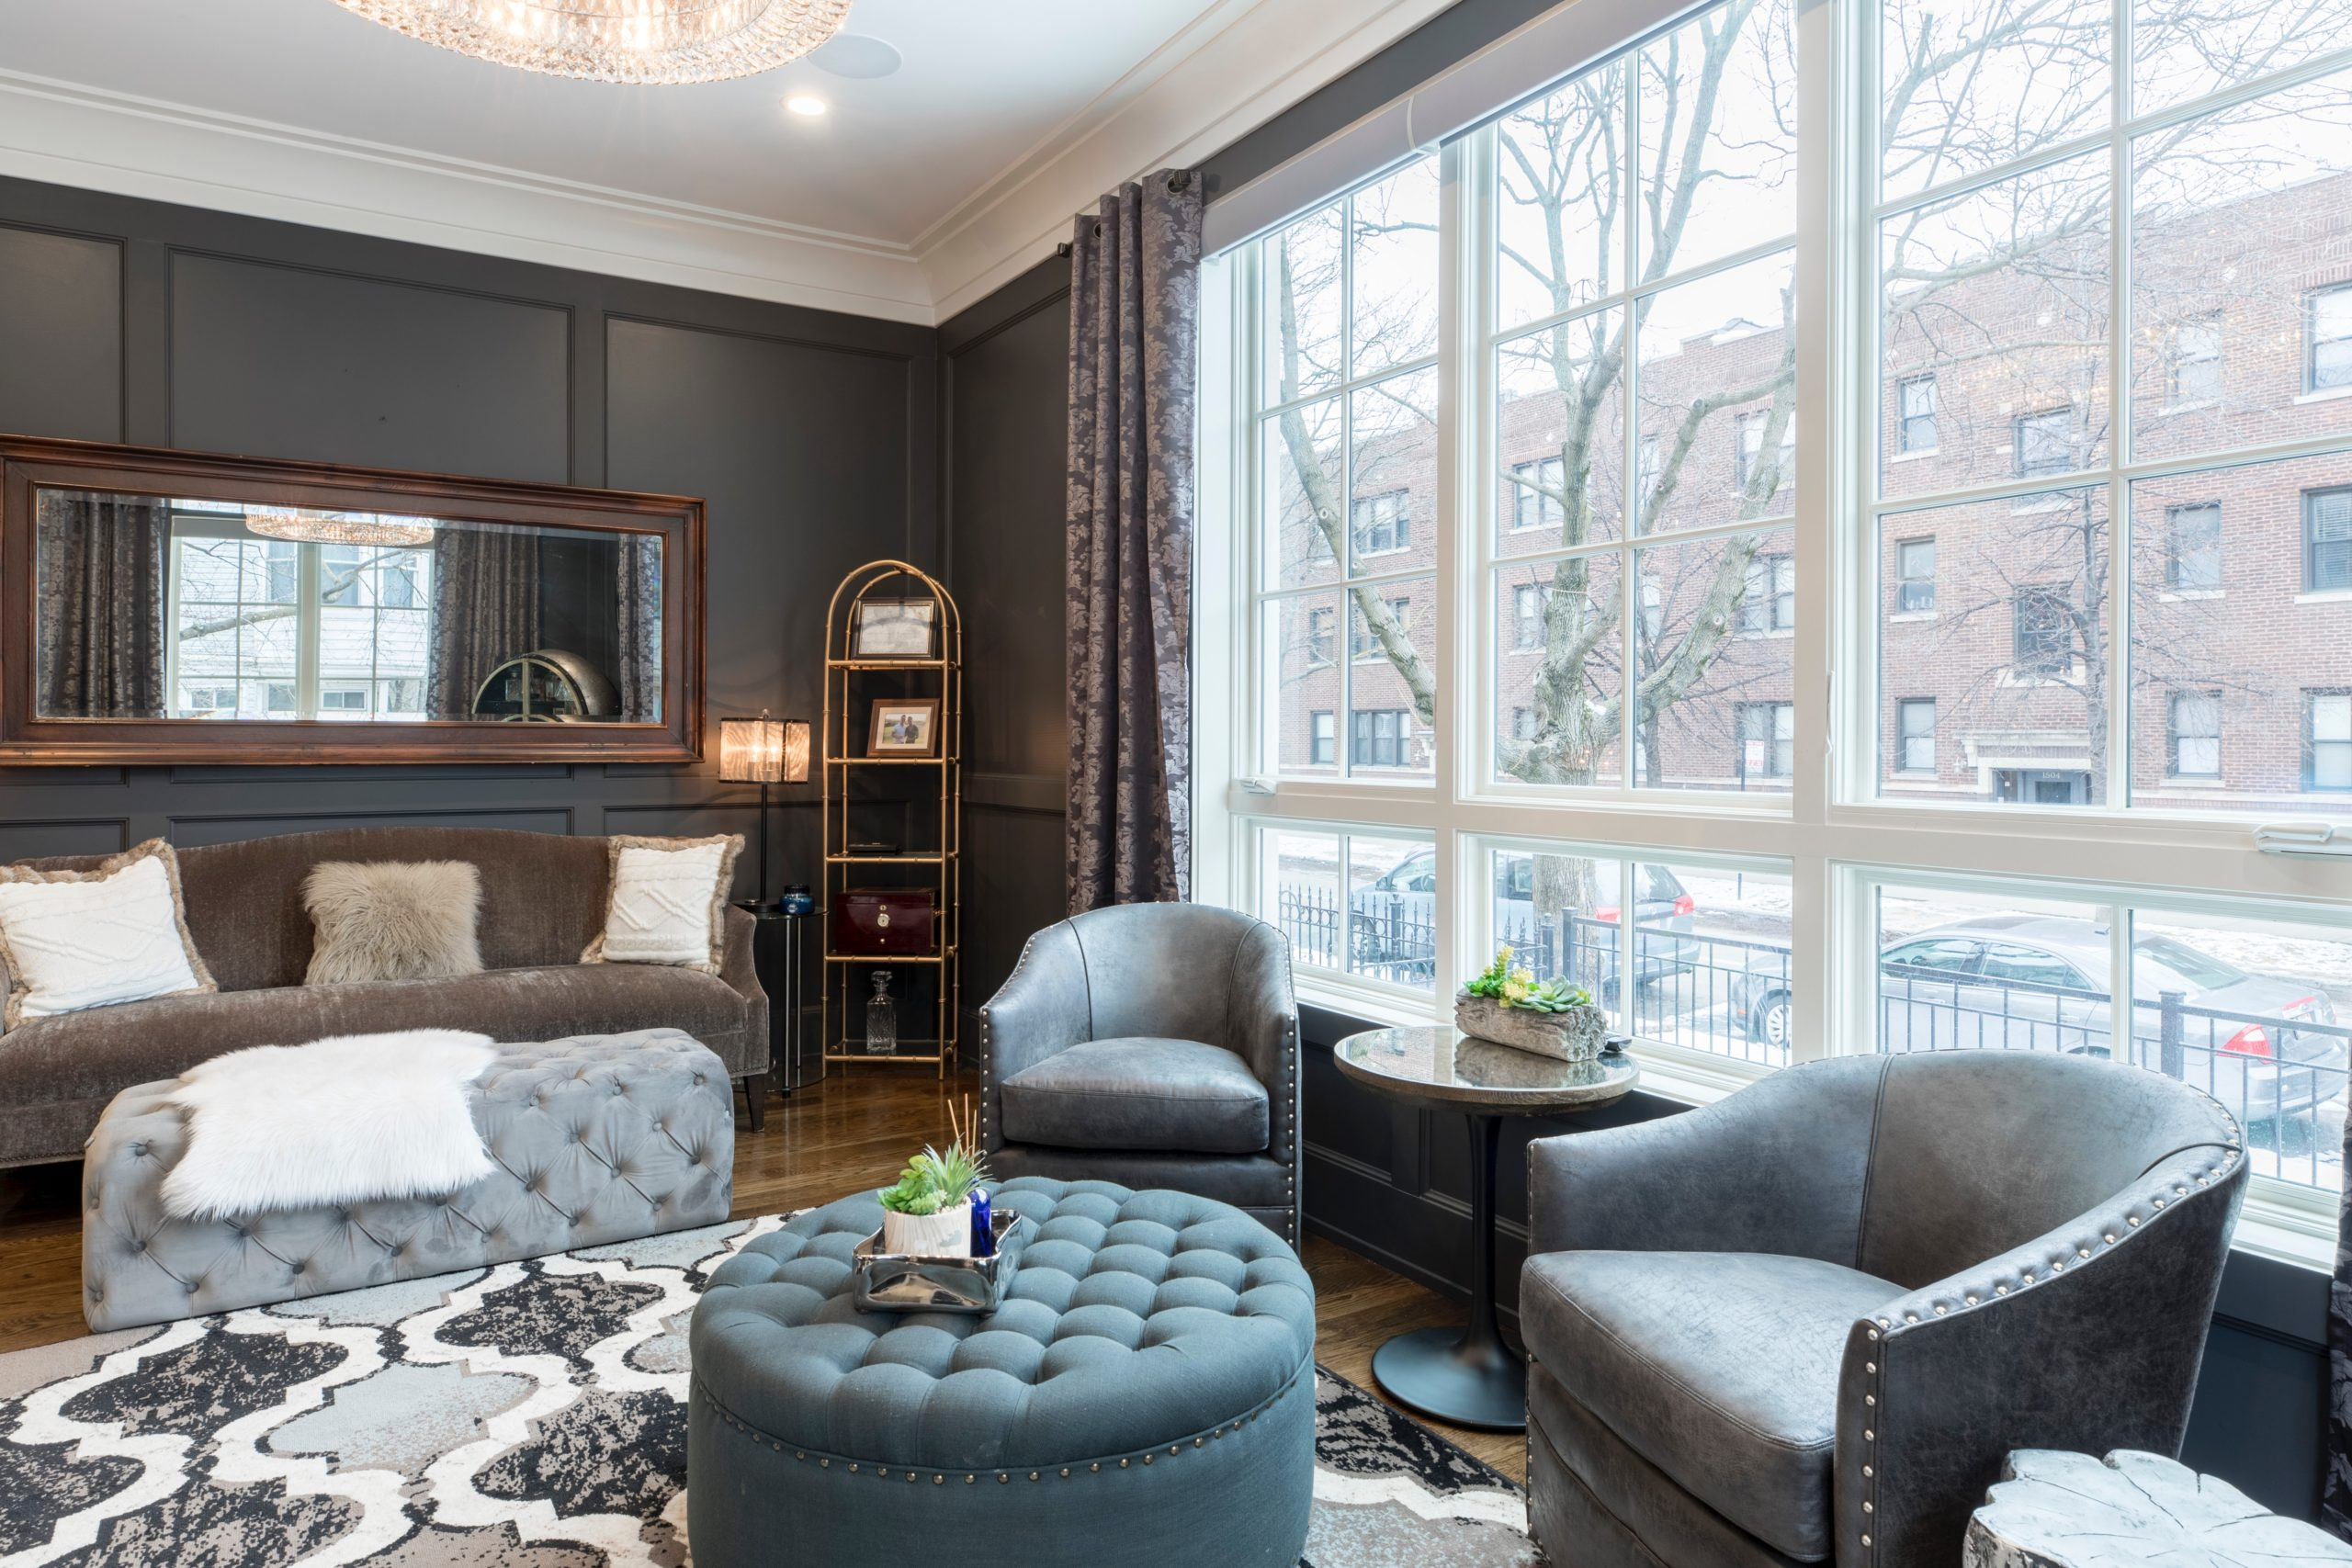 Beat The Winter Blues With Cozy Home Decor Jarons Furniture Blog